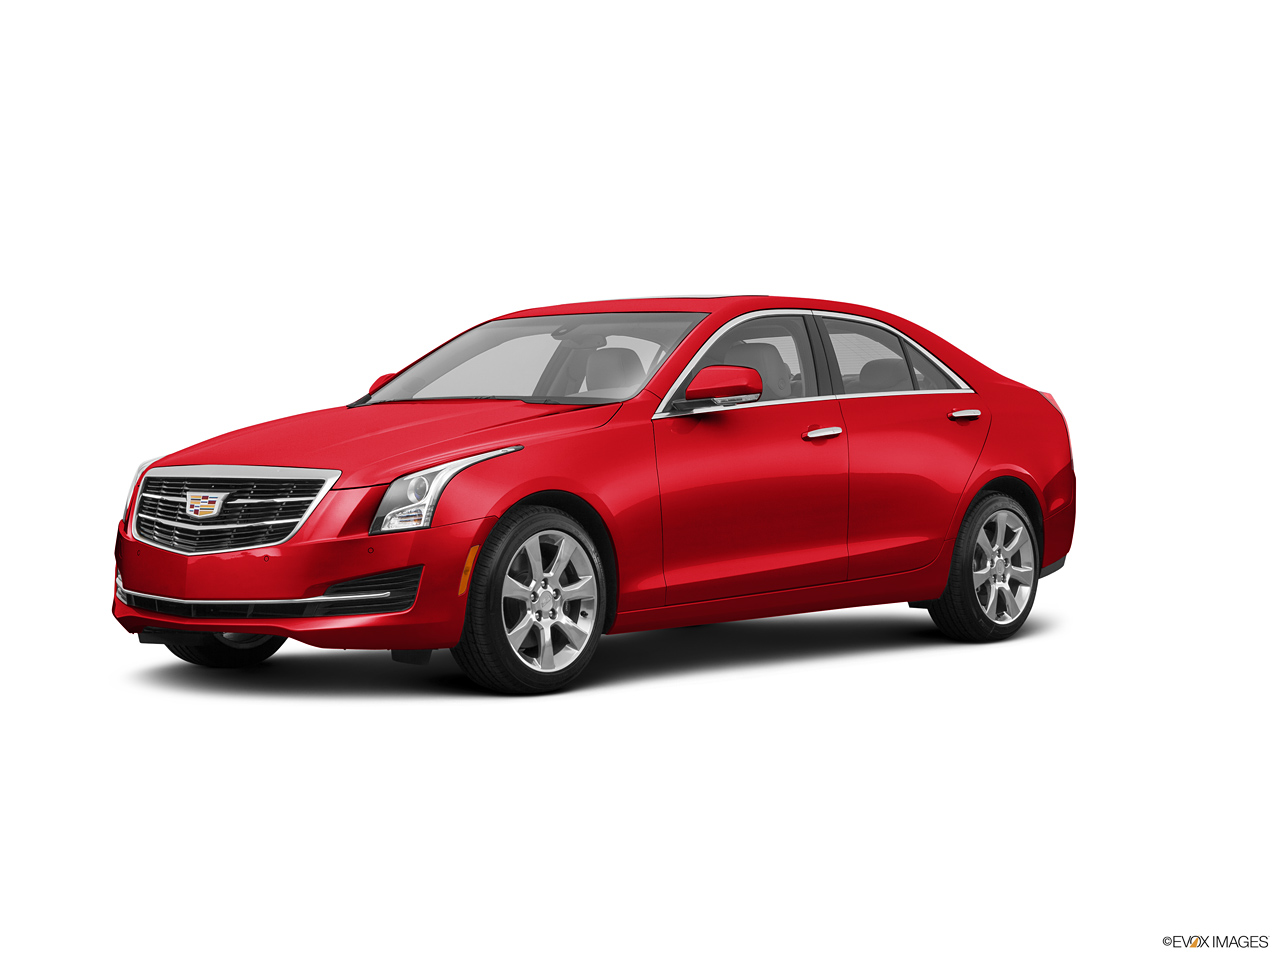 car features list for cadillac ats 2016 3 6l uae. Black Bedroom Furniture Sets. Home Design Ideas